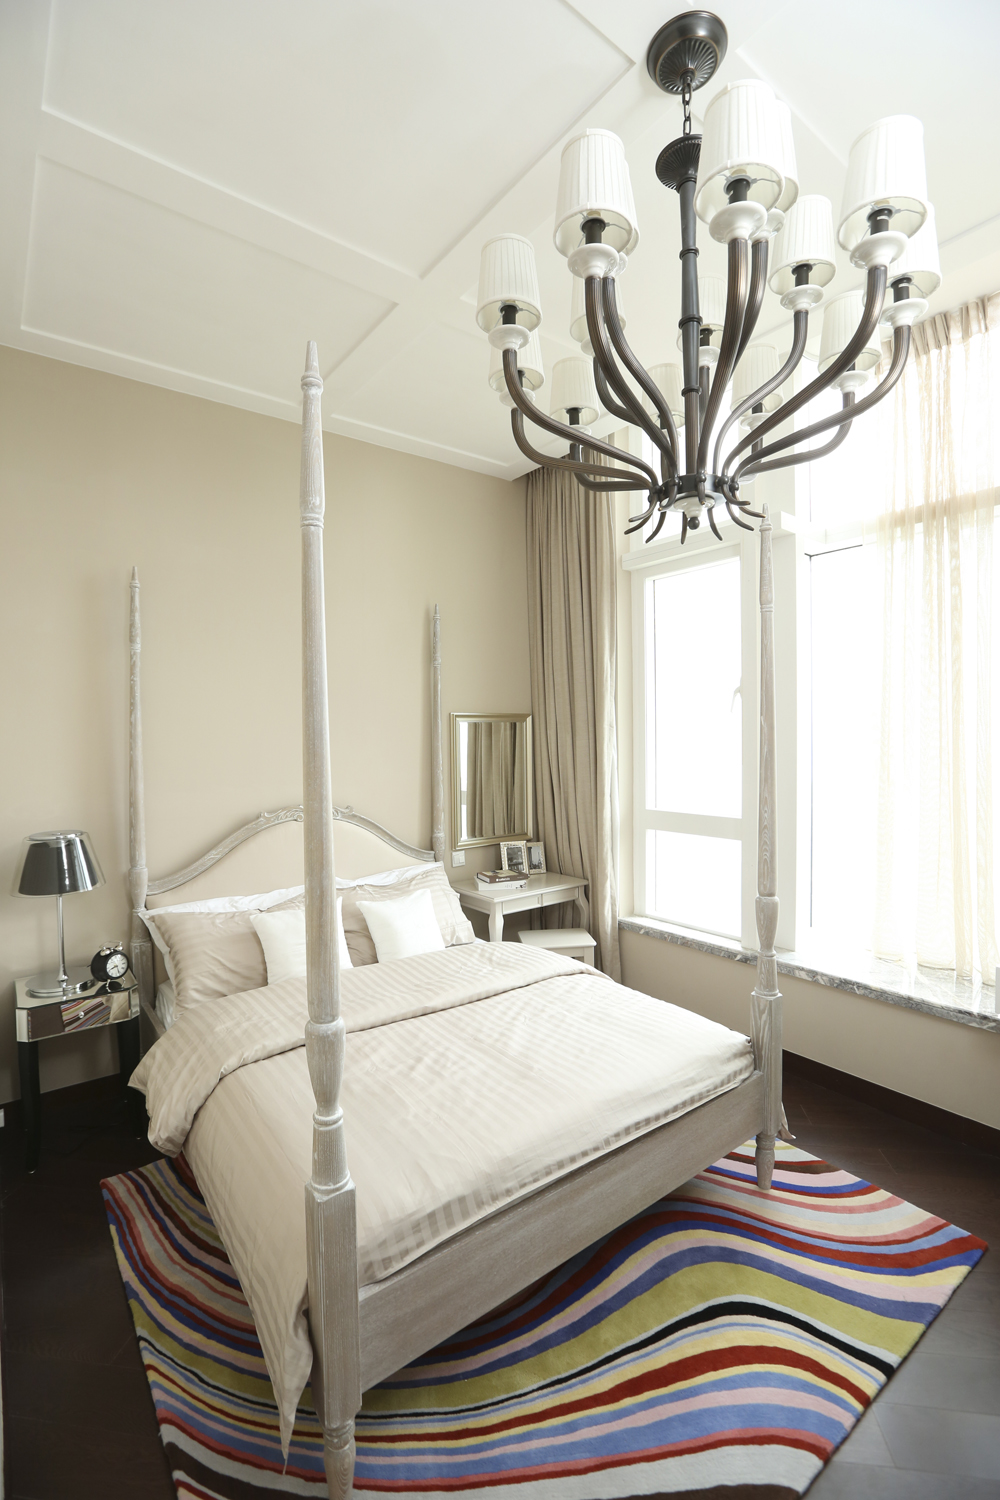 Daughteru0027s Bedroom Chang Gave The Bedroom Its Sense Of Fun With A Swirling,  Stripy Rug And Mismatched Bedside Tables. The Mirrored Table (HK$4,000), ...